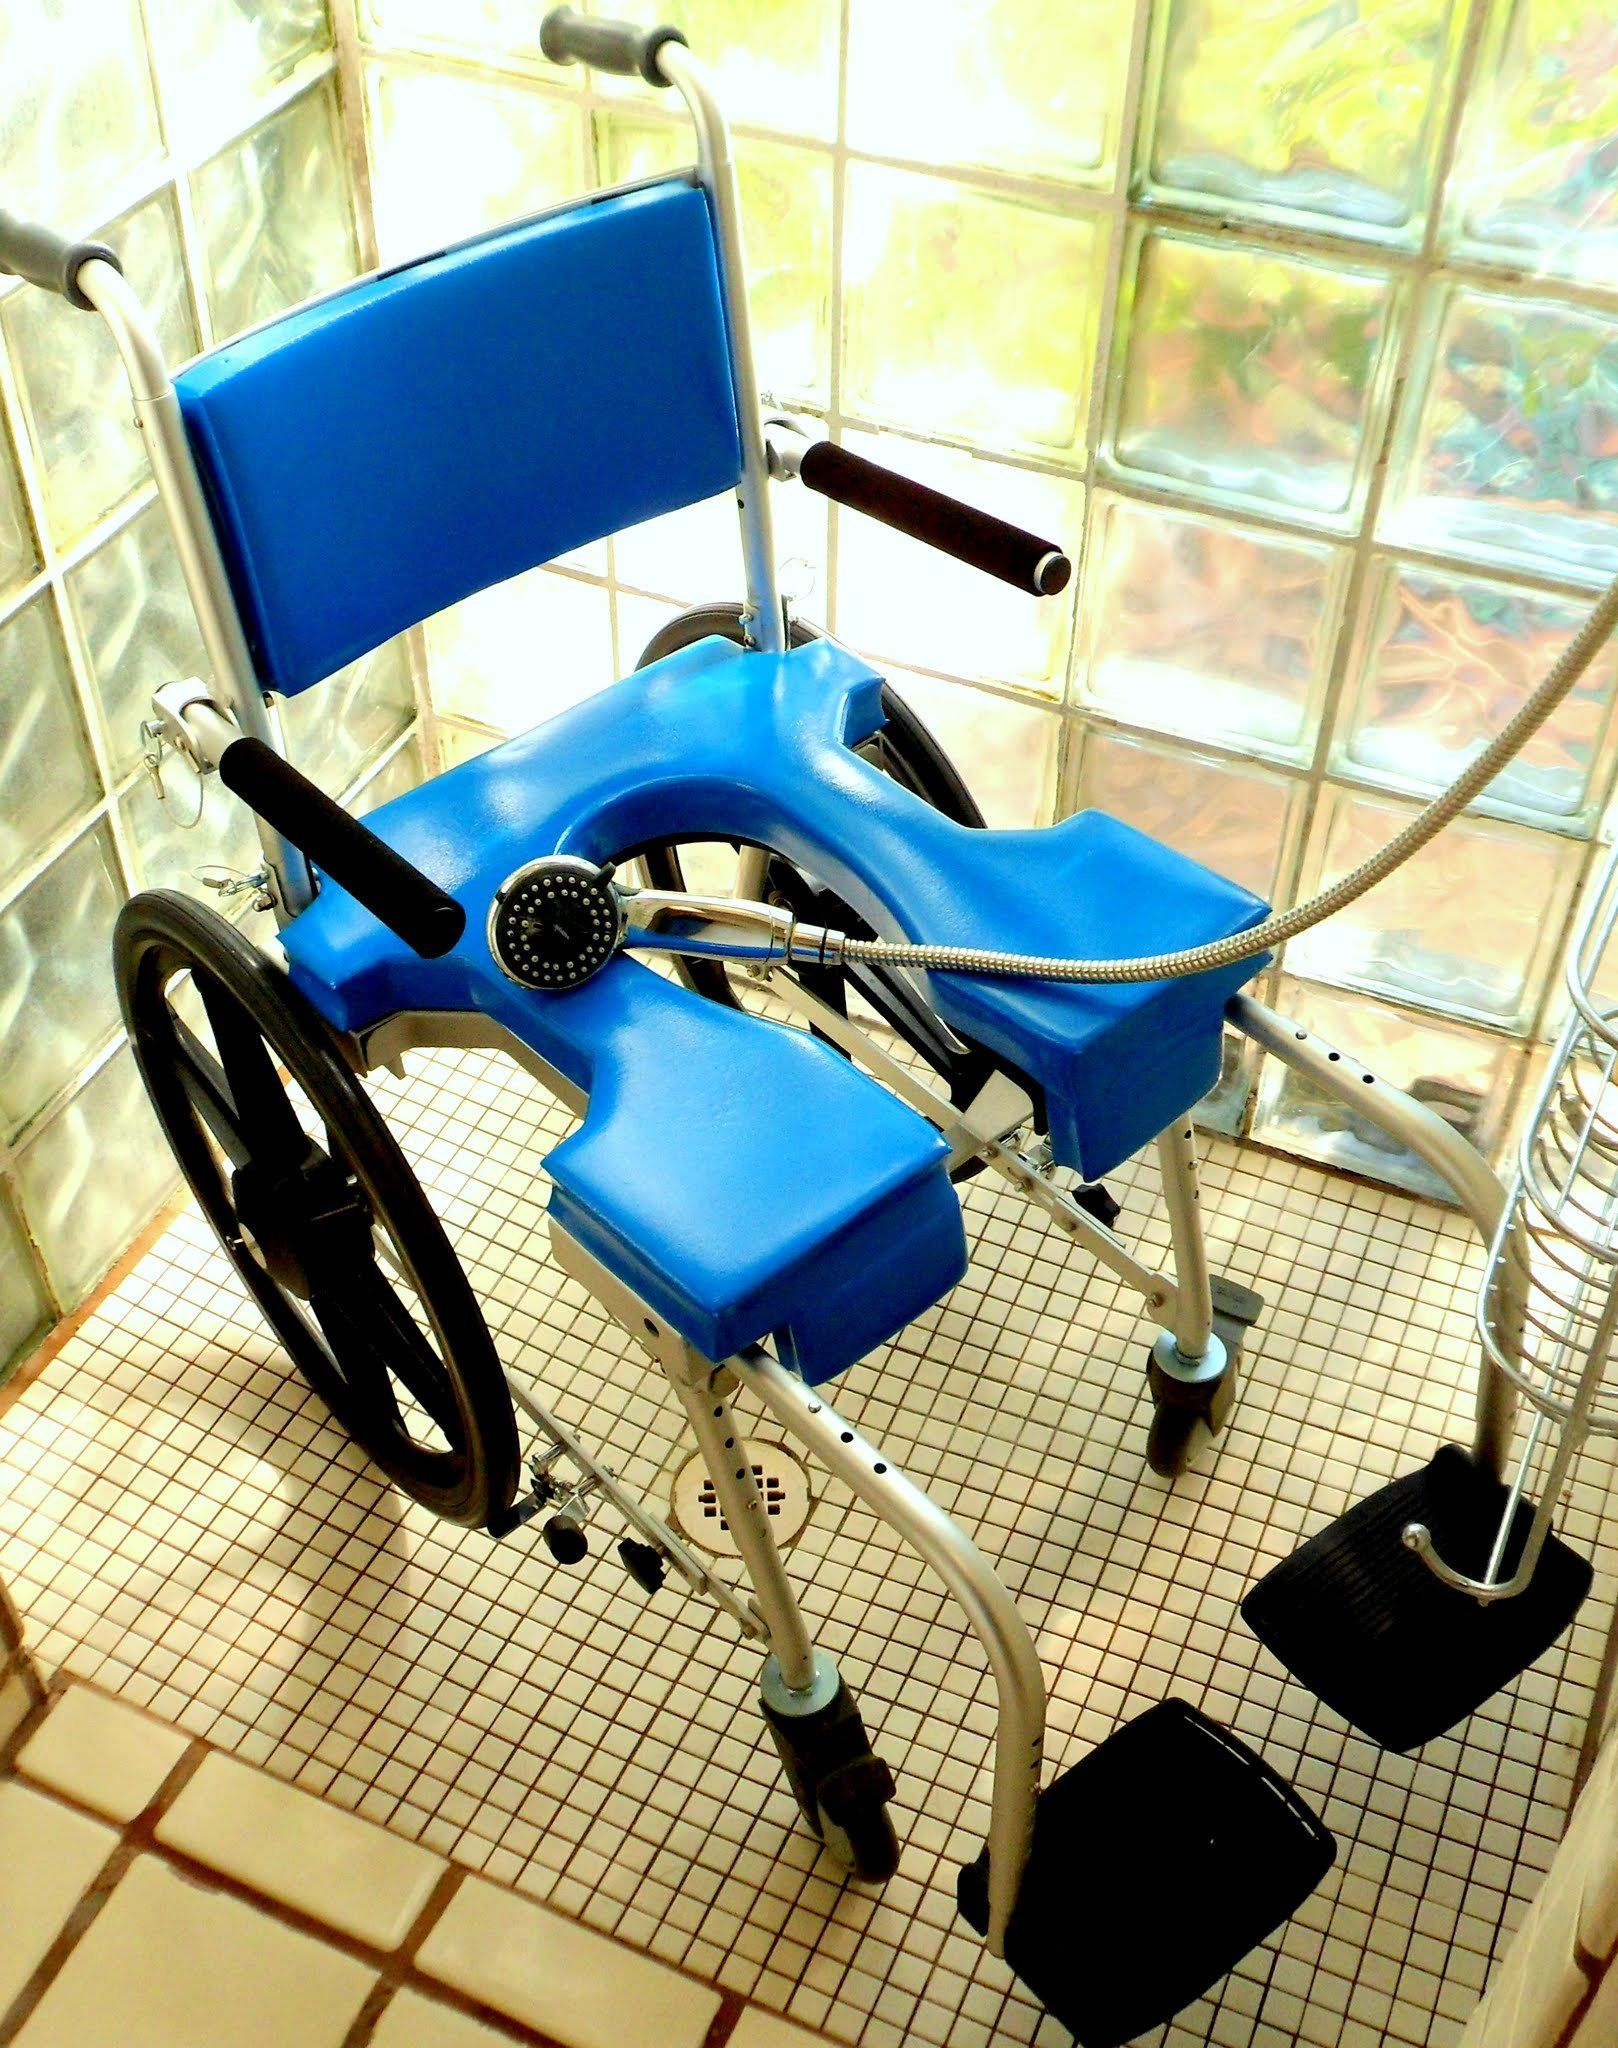 Portable Commode Shower Wheelchair Self Propel Go Mobility Solutions Shower Wheelchair Shower Commode Chair Commode Chair